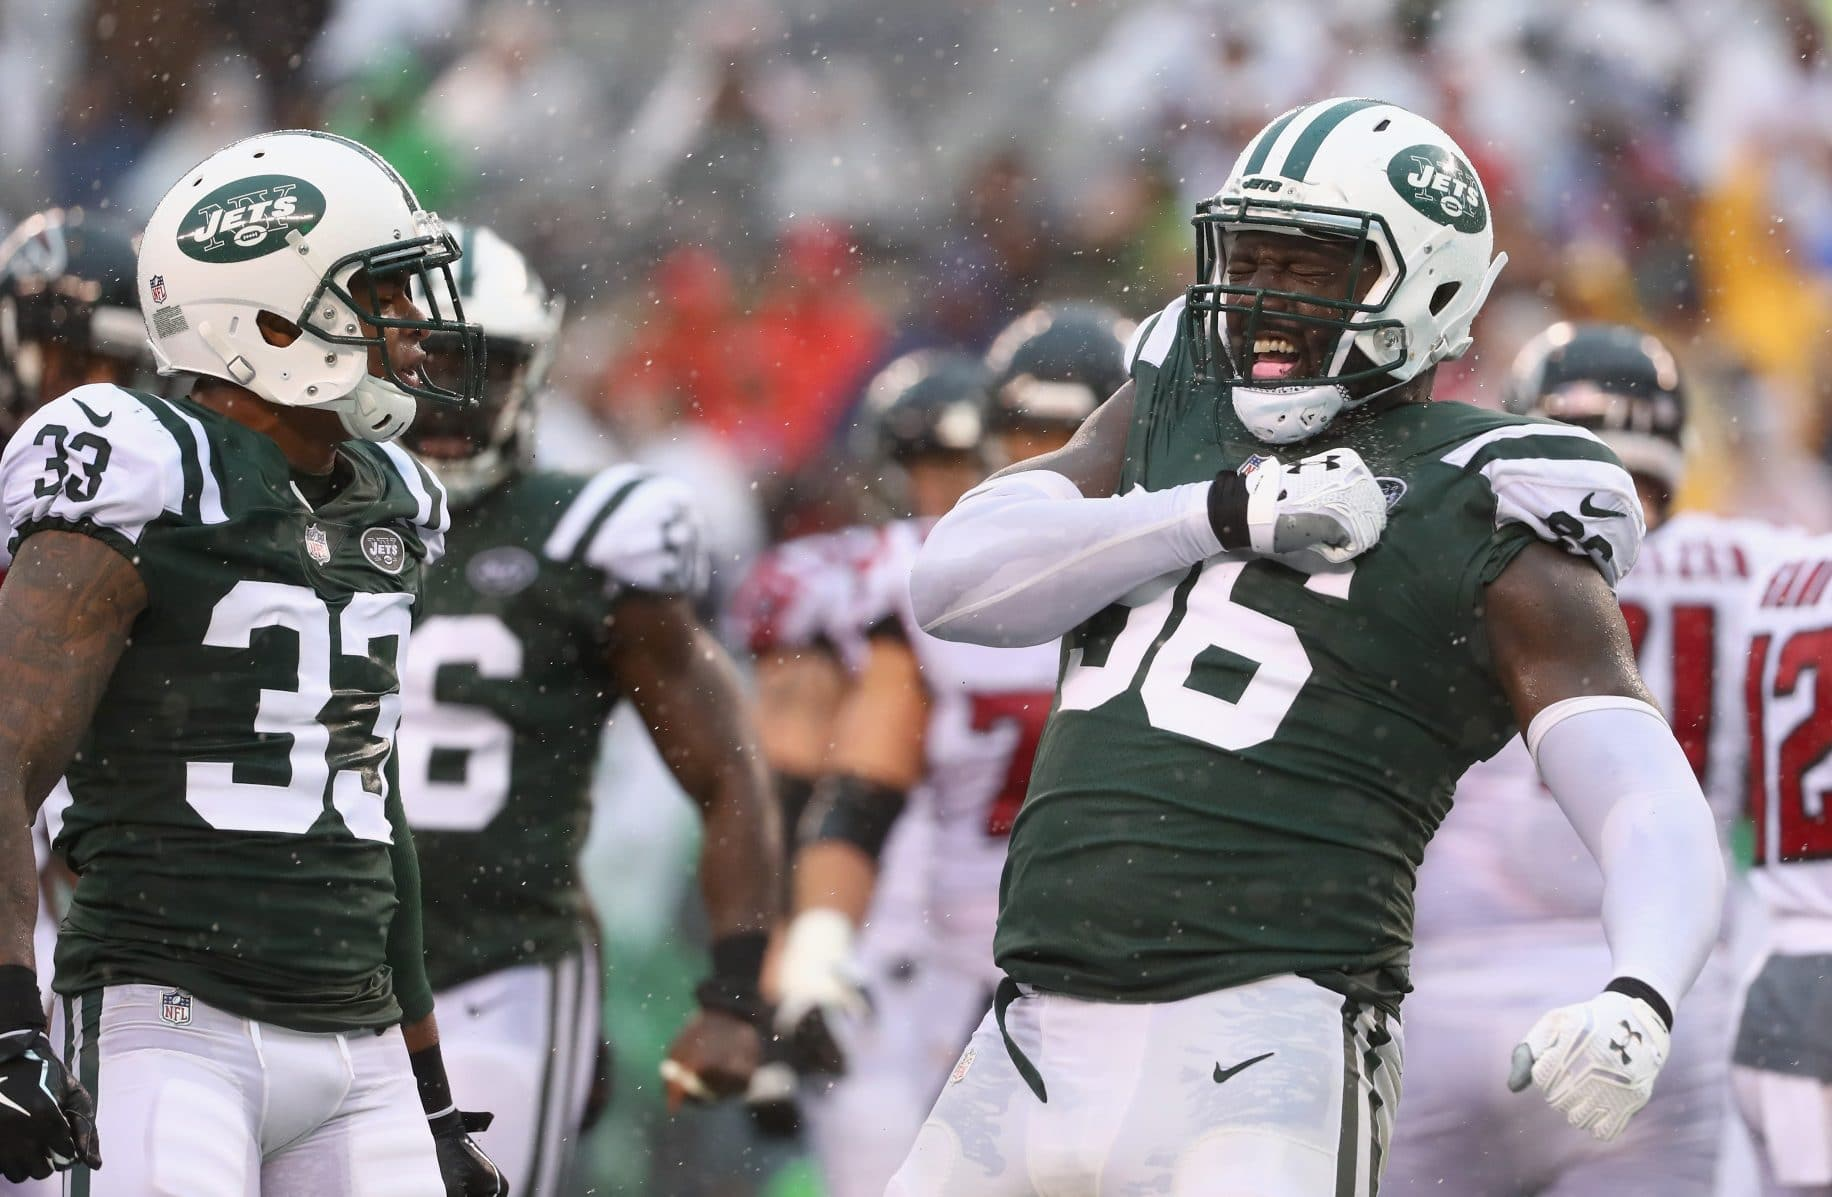 New York Jets: Muhammad Wilkerson benched due to tardiness